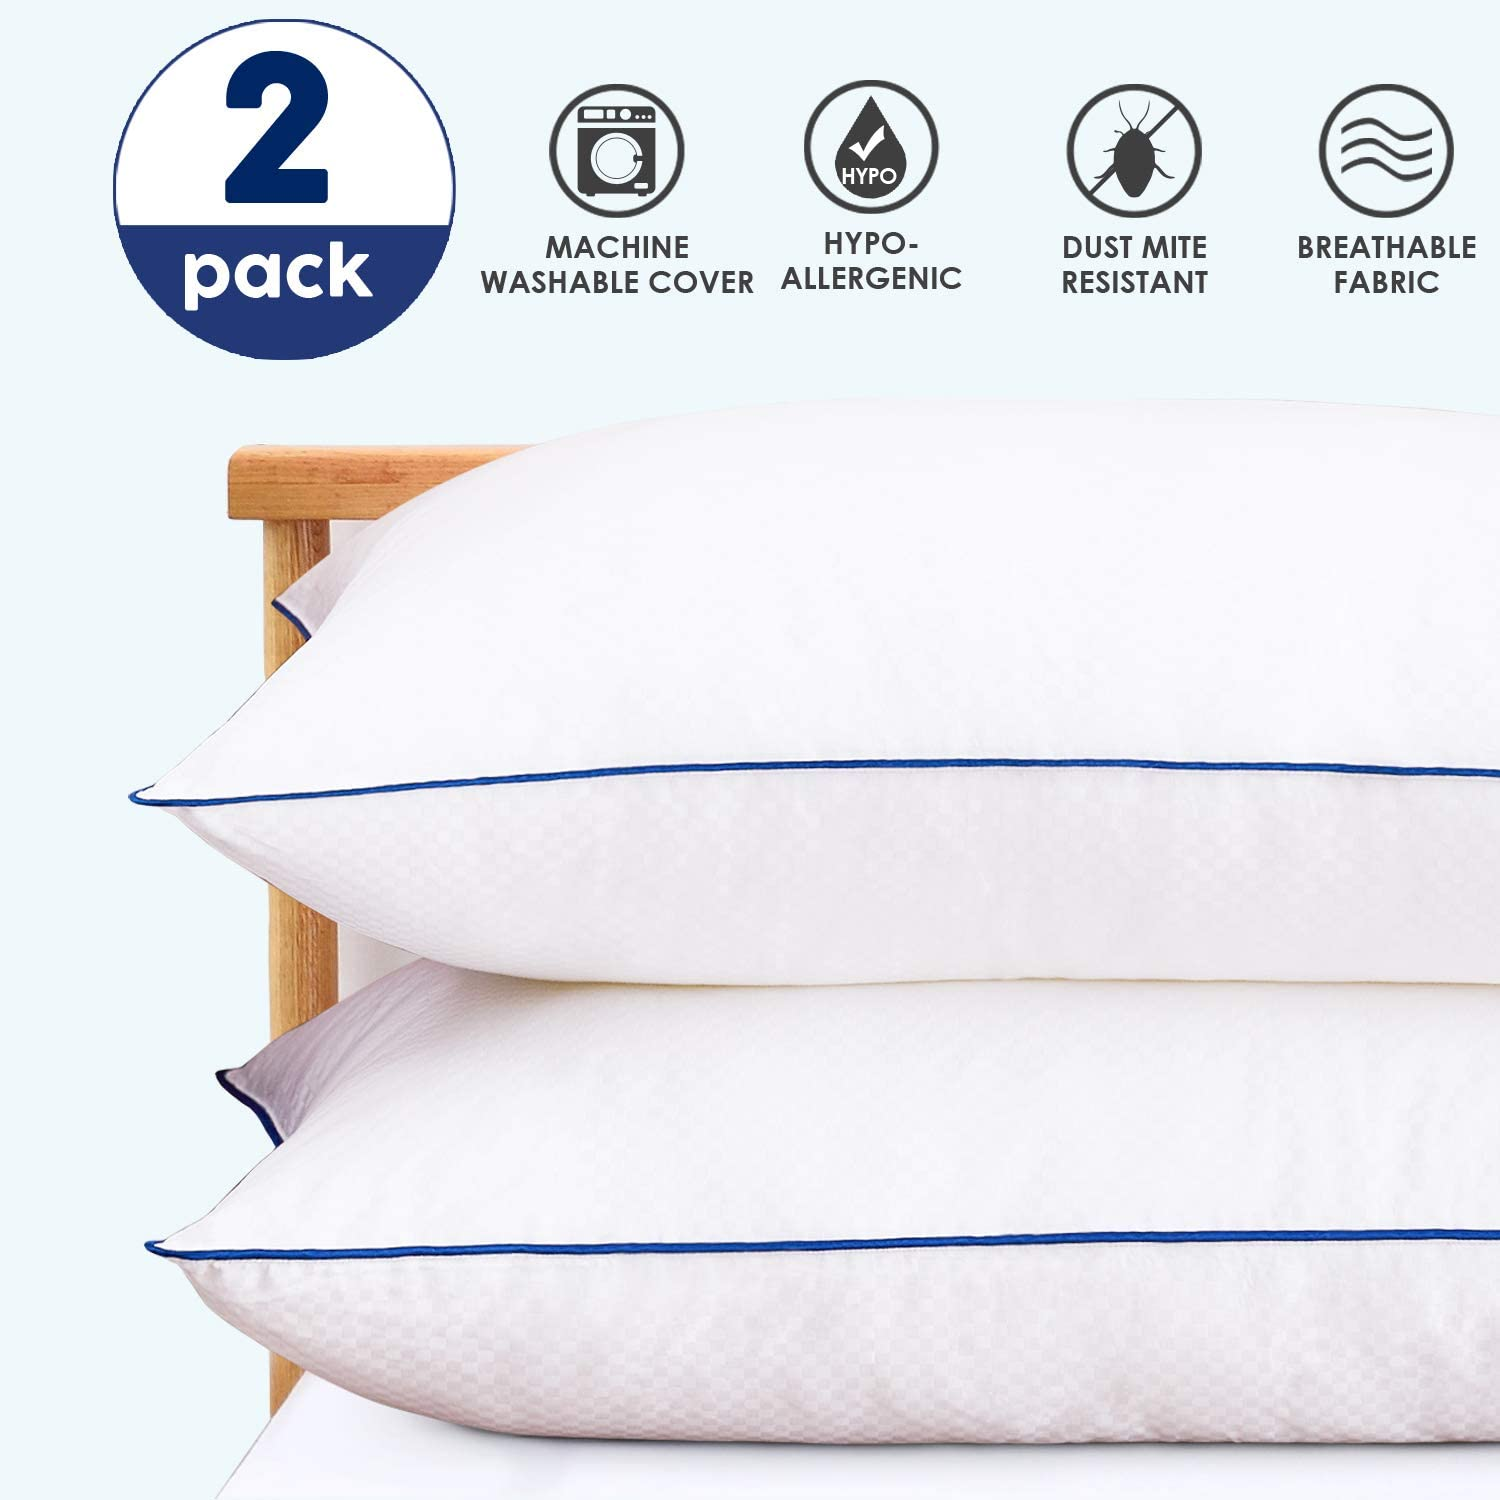 Bed Pillows for Sleeping Set of 2 Hypoallergenic Hotel Collection Gel Pillow Luxury Down Alternative Pillow for Side Back and Stomach Sleeper Cooling Pillows with Breathable Cotton Cover Queen Size